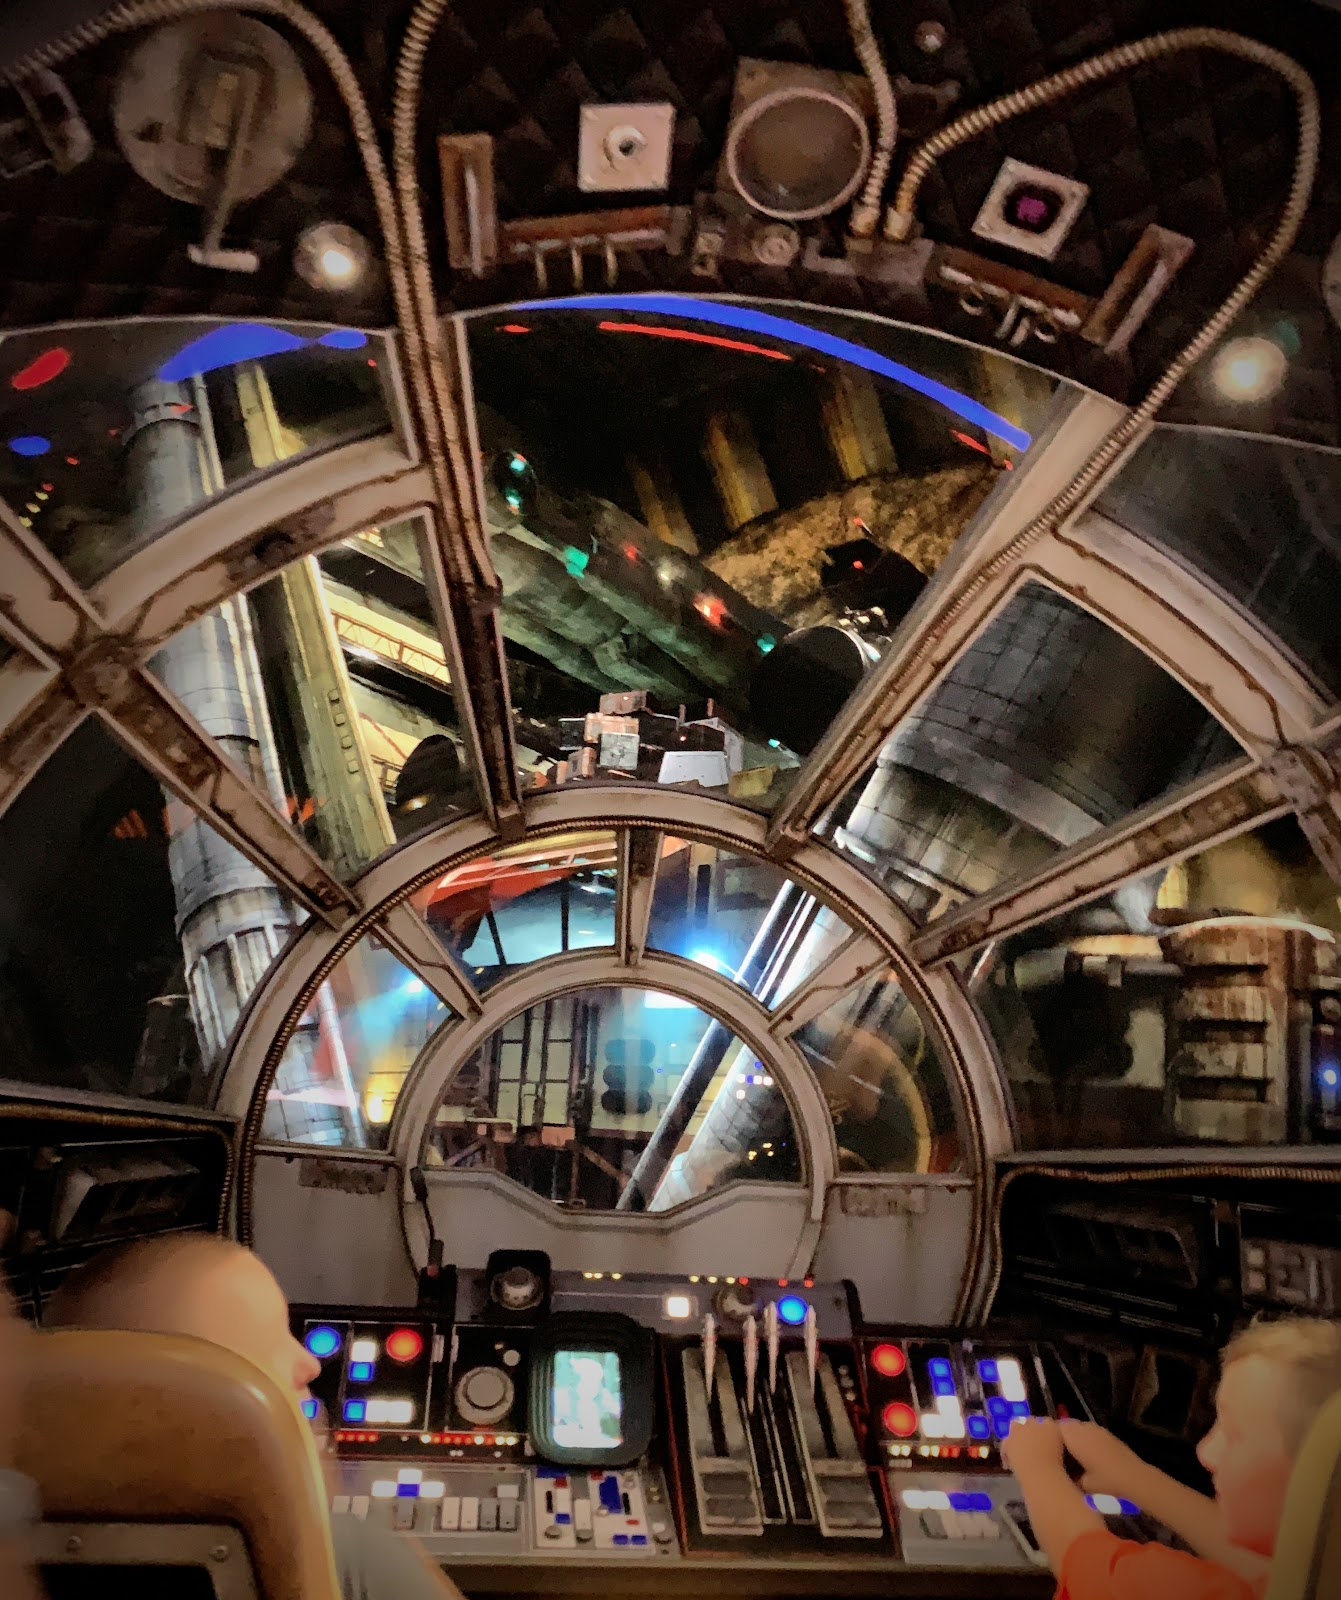 Star Wars Galaxy's Edge Millennium Falcon: Smugglers's Run